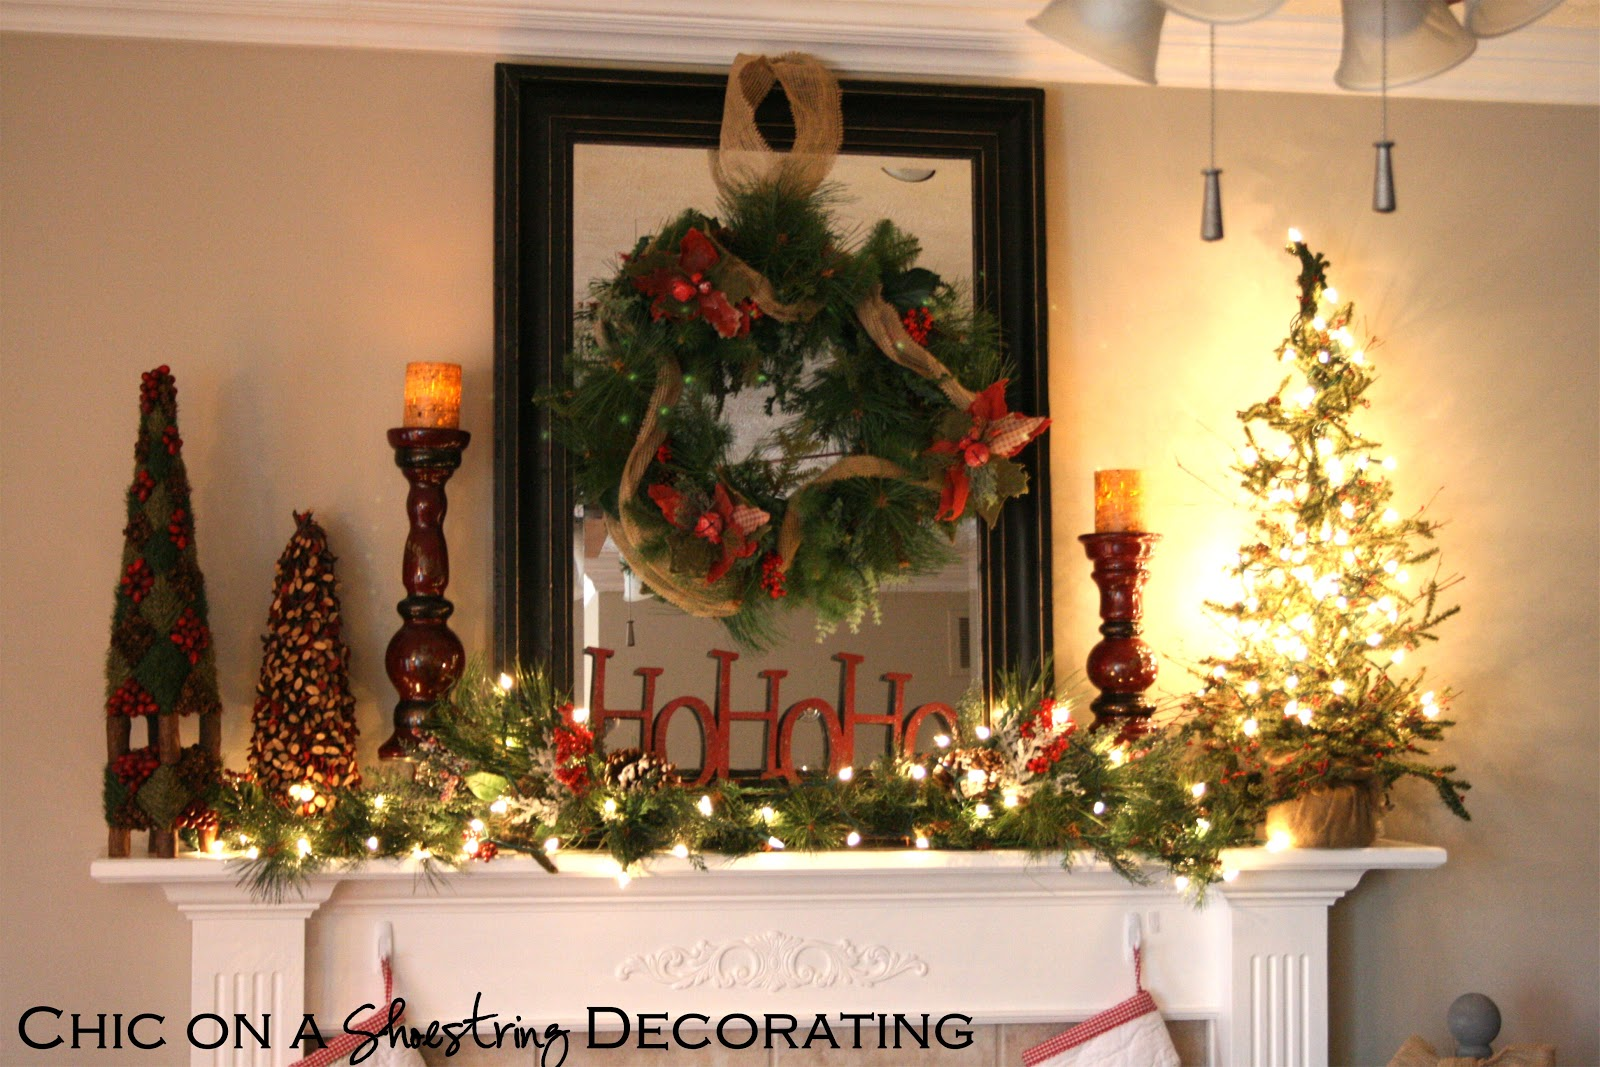 Chic on a shoestring decorating christmas home tour part for Home decorations for christmas